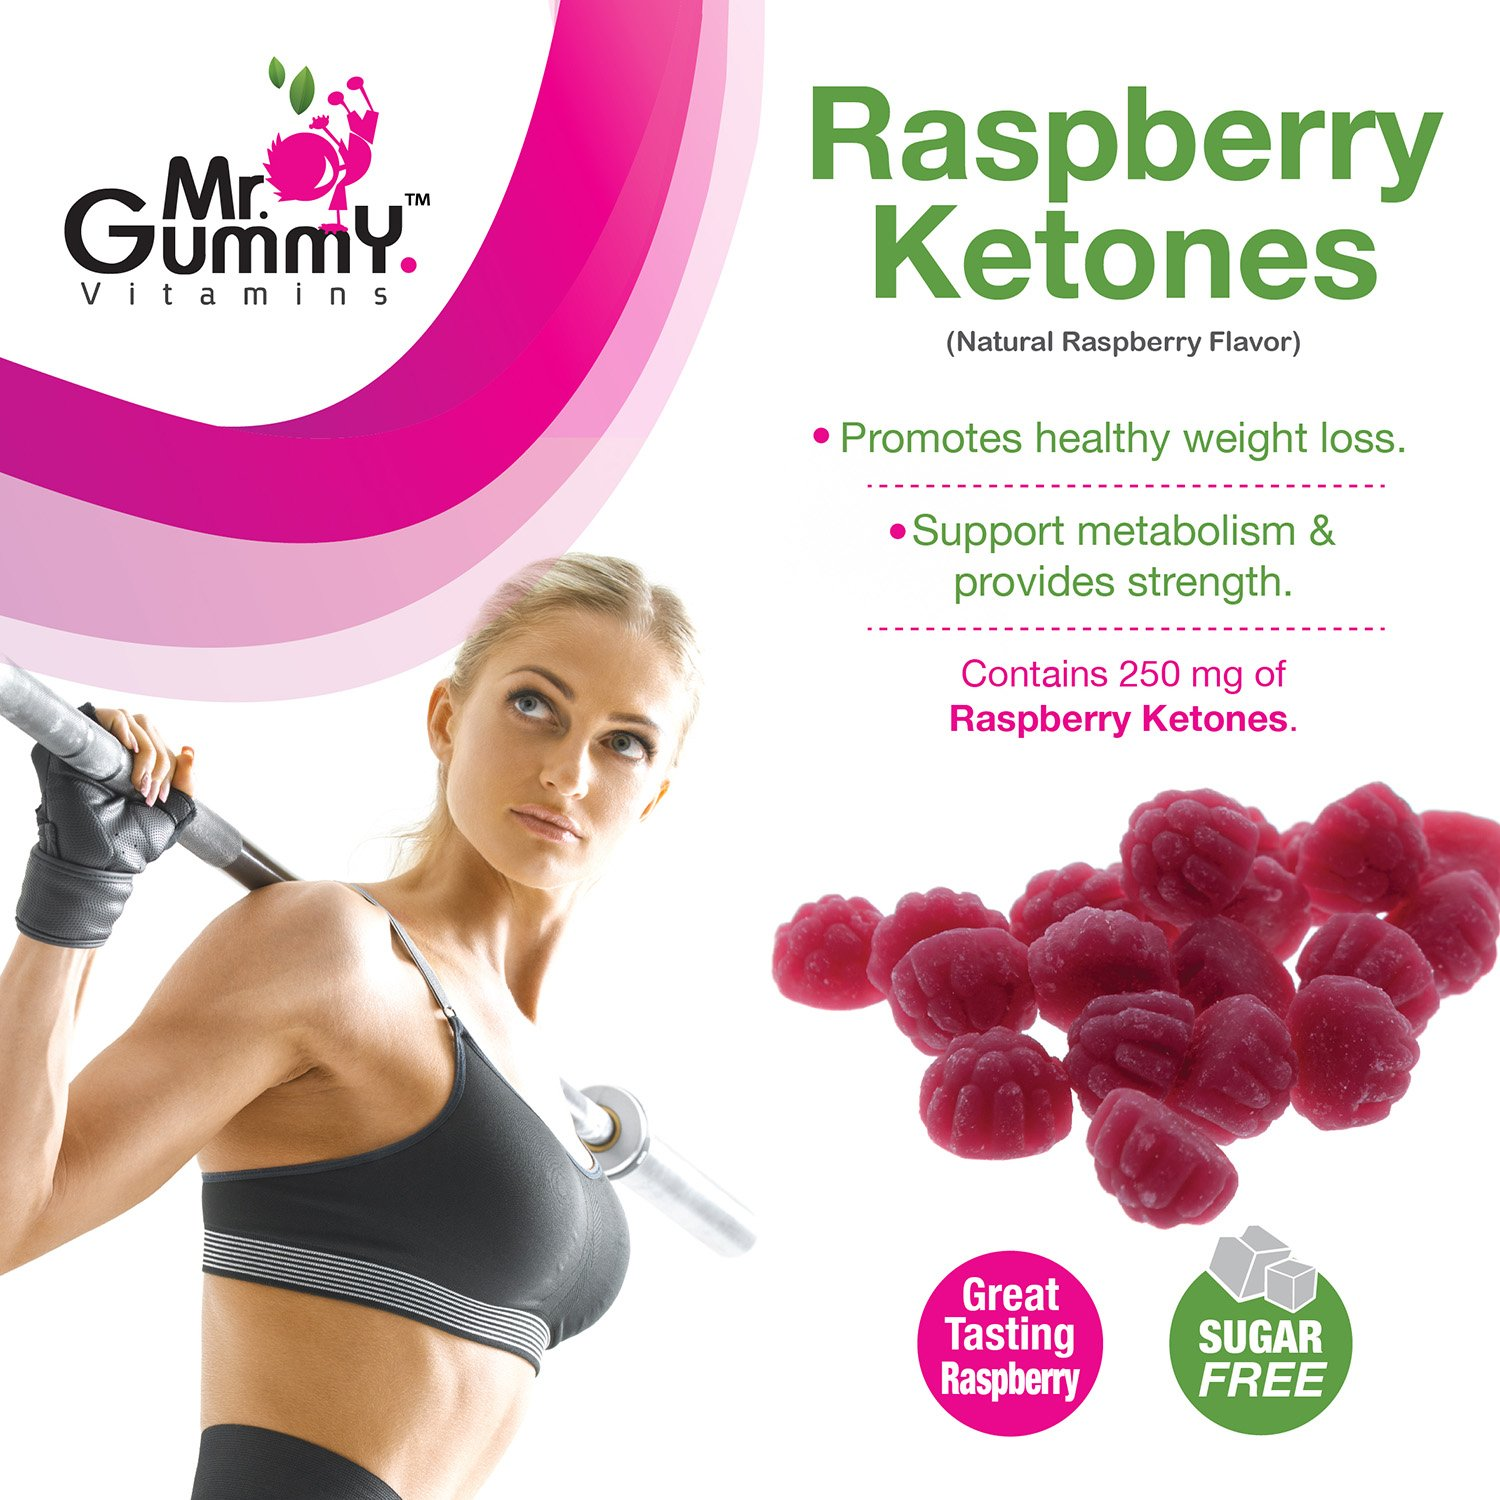 Mr Gummy Vitamins Raspberry Ketones Sugar Free Dietary Ketogenic Supplement | Promotes Healthy Weight Loss, Supports Metabolism & Provides Strength | [100 Gummies, 50-Day Supply] | for Men and Women by Mr. Gummy (Image #2)